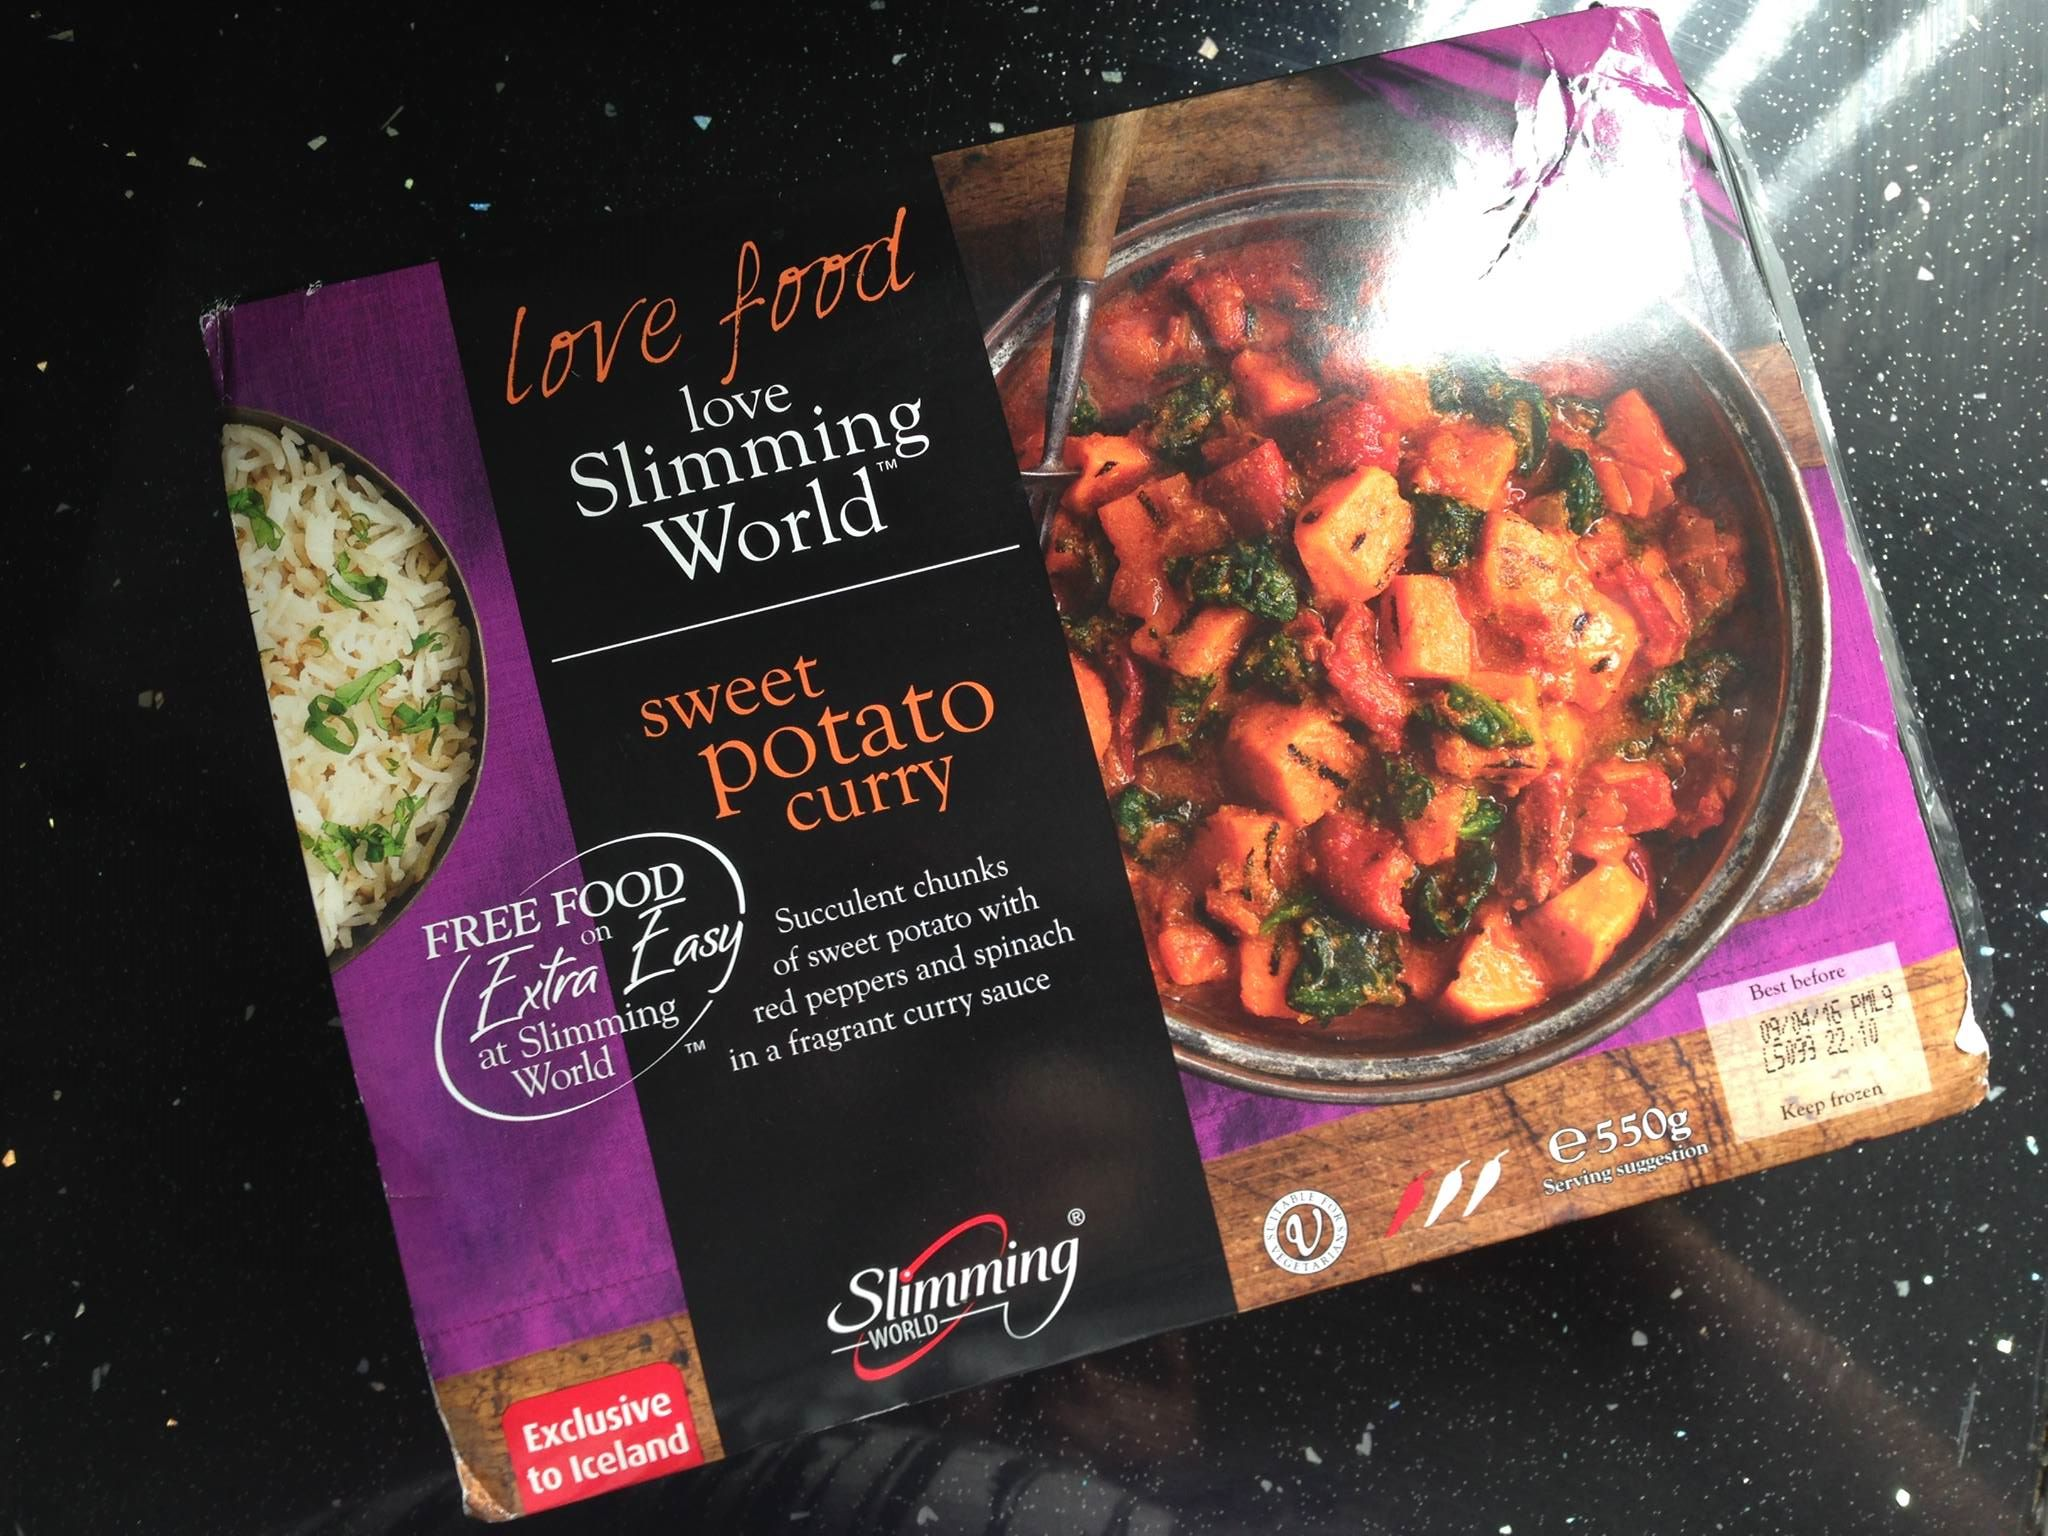 Slimming World Sweet Potato Curry